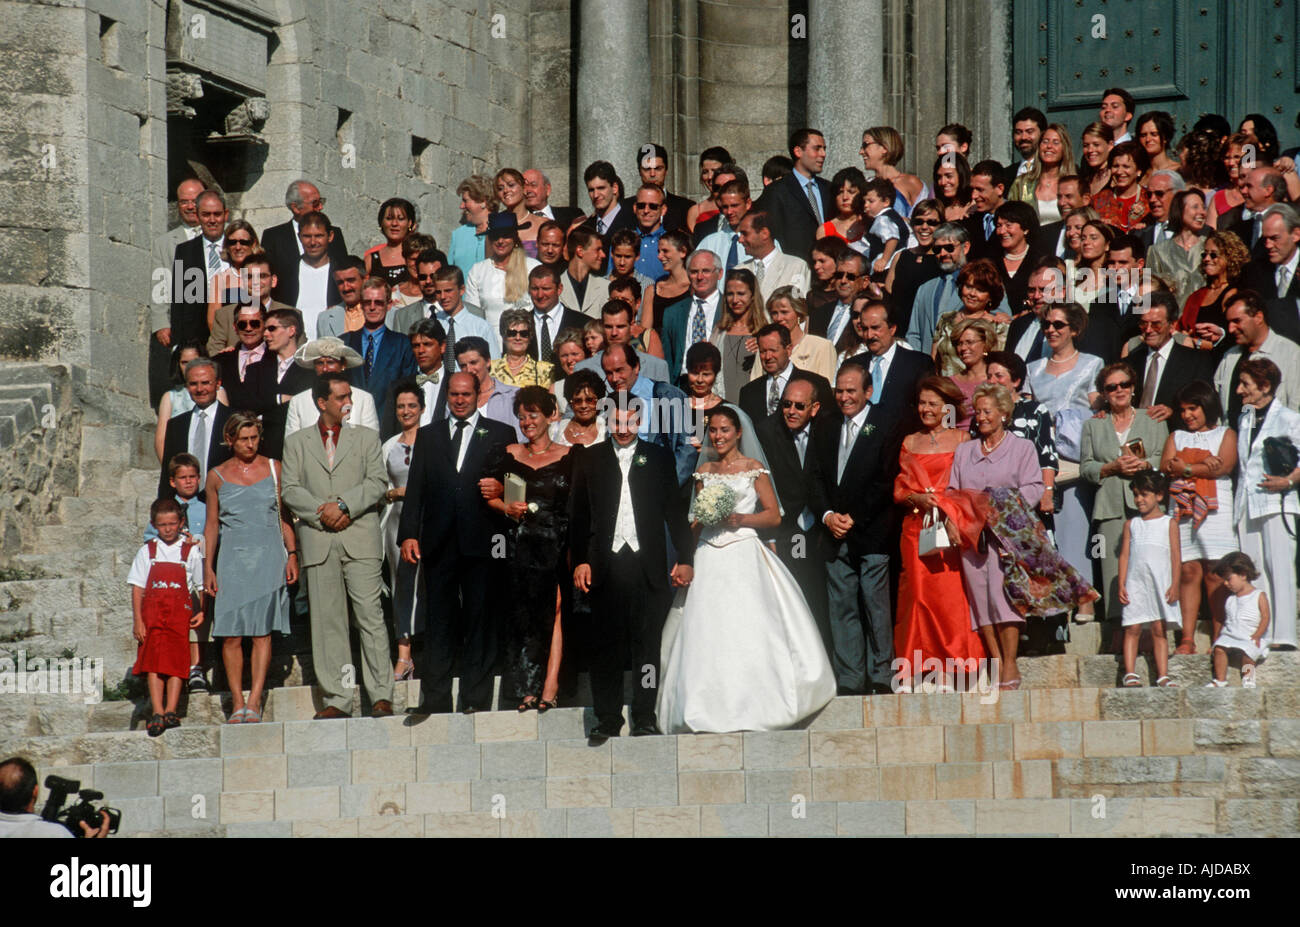 Wedding Guest Photography